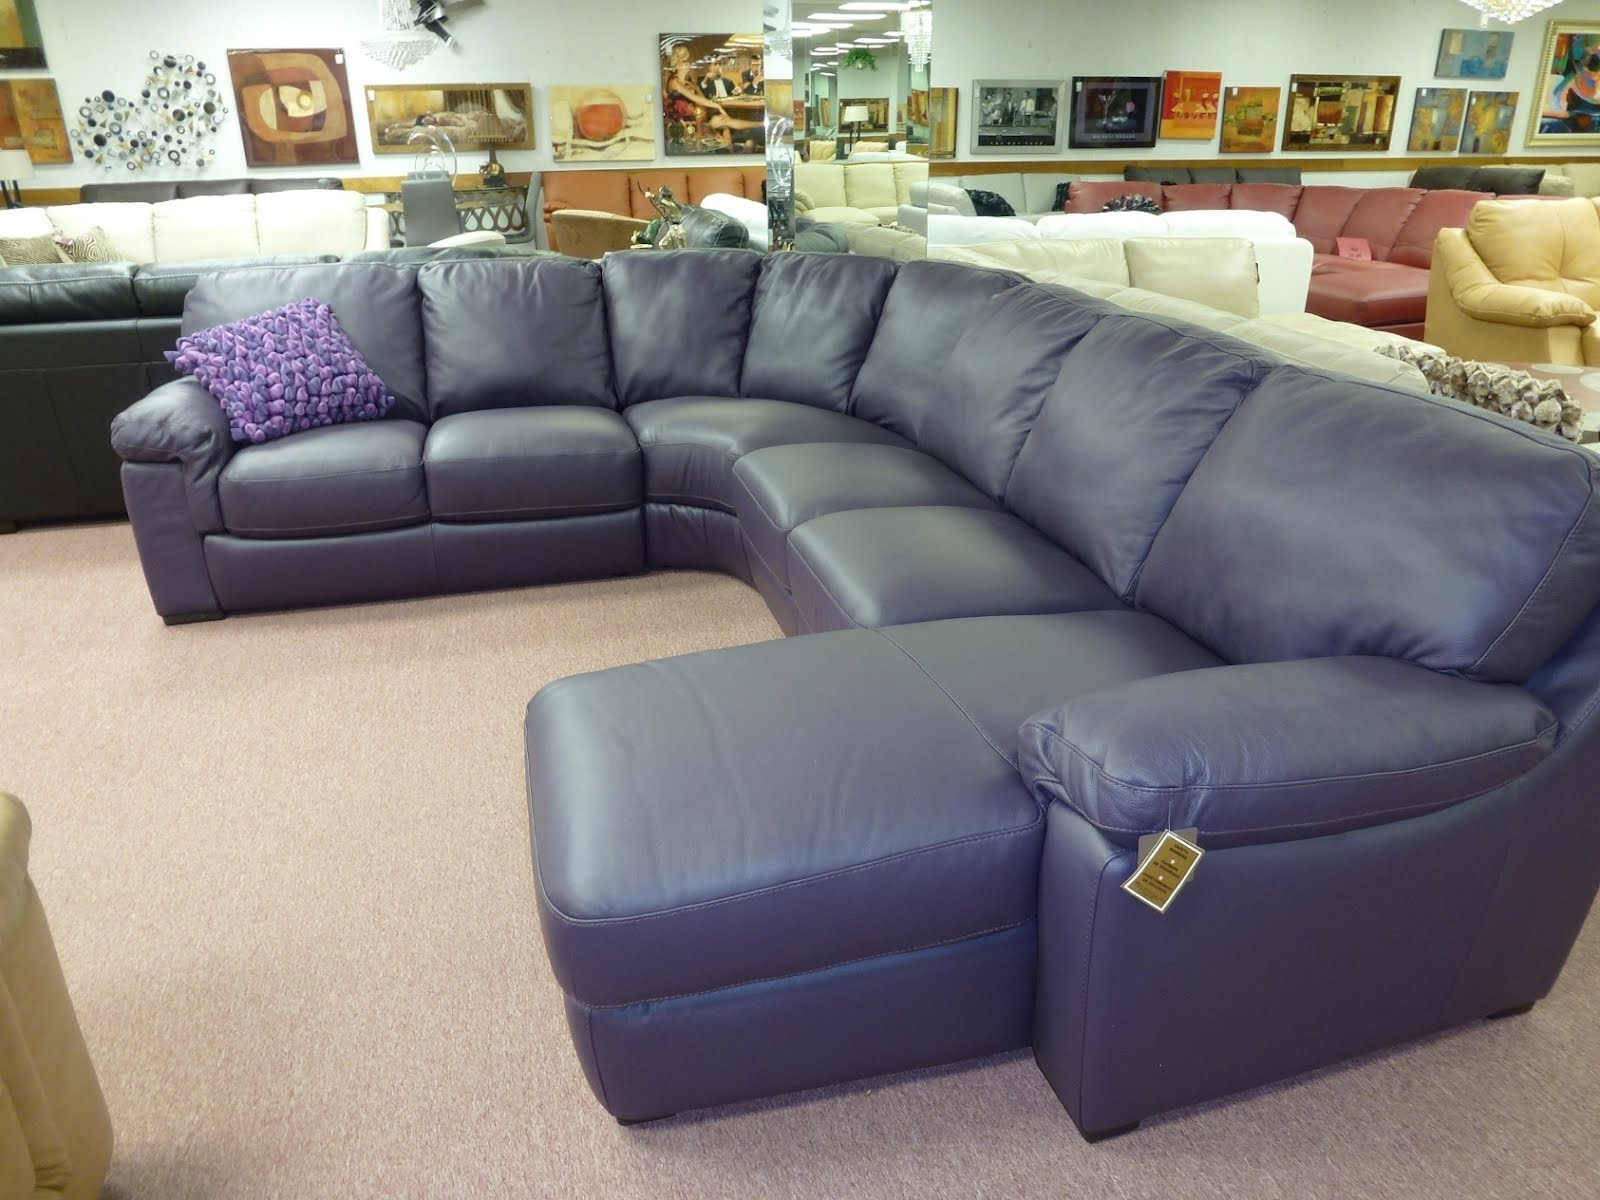 Astounding Eggplant Sectional Sofa 62 For Convertible Sectional Throughout Eggplant Sectional Sofa (#2 of 12)